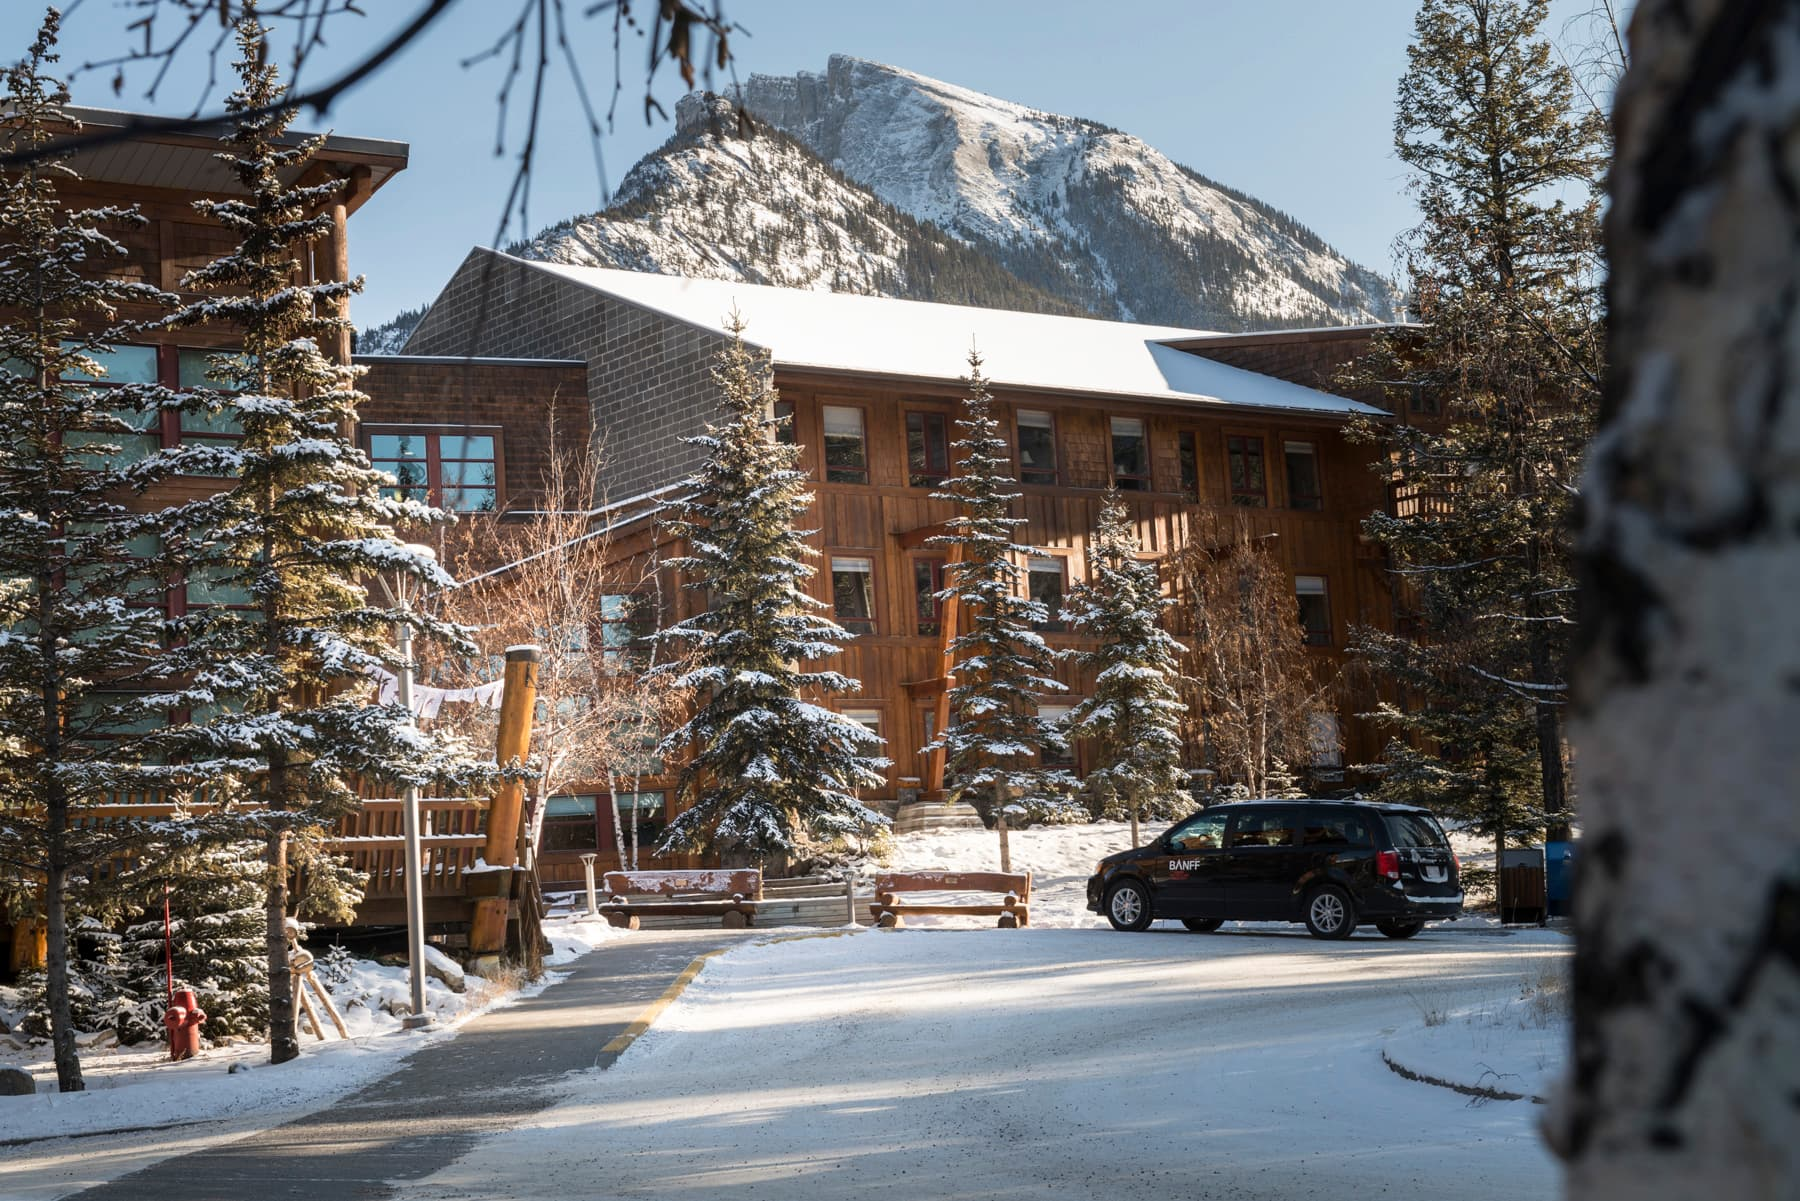 PDC Hotel at Banff Centre with a backdrop of snow-capped mountains.